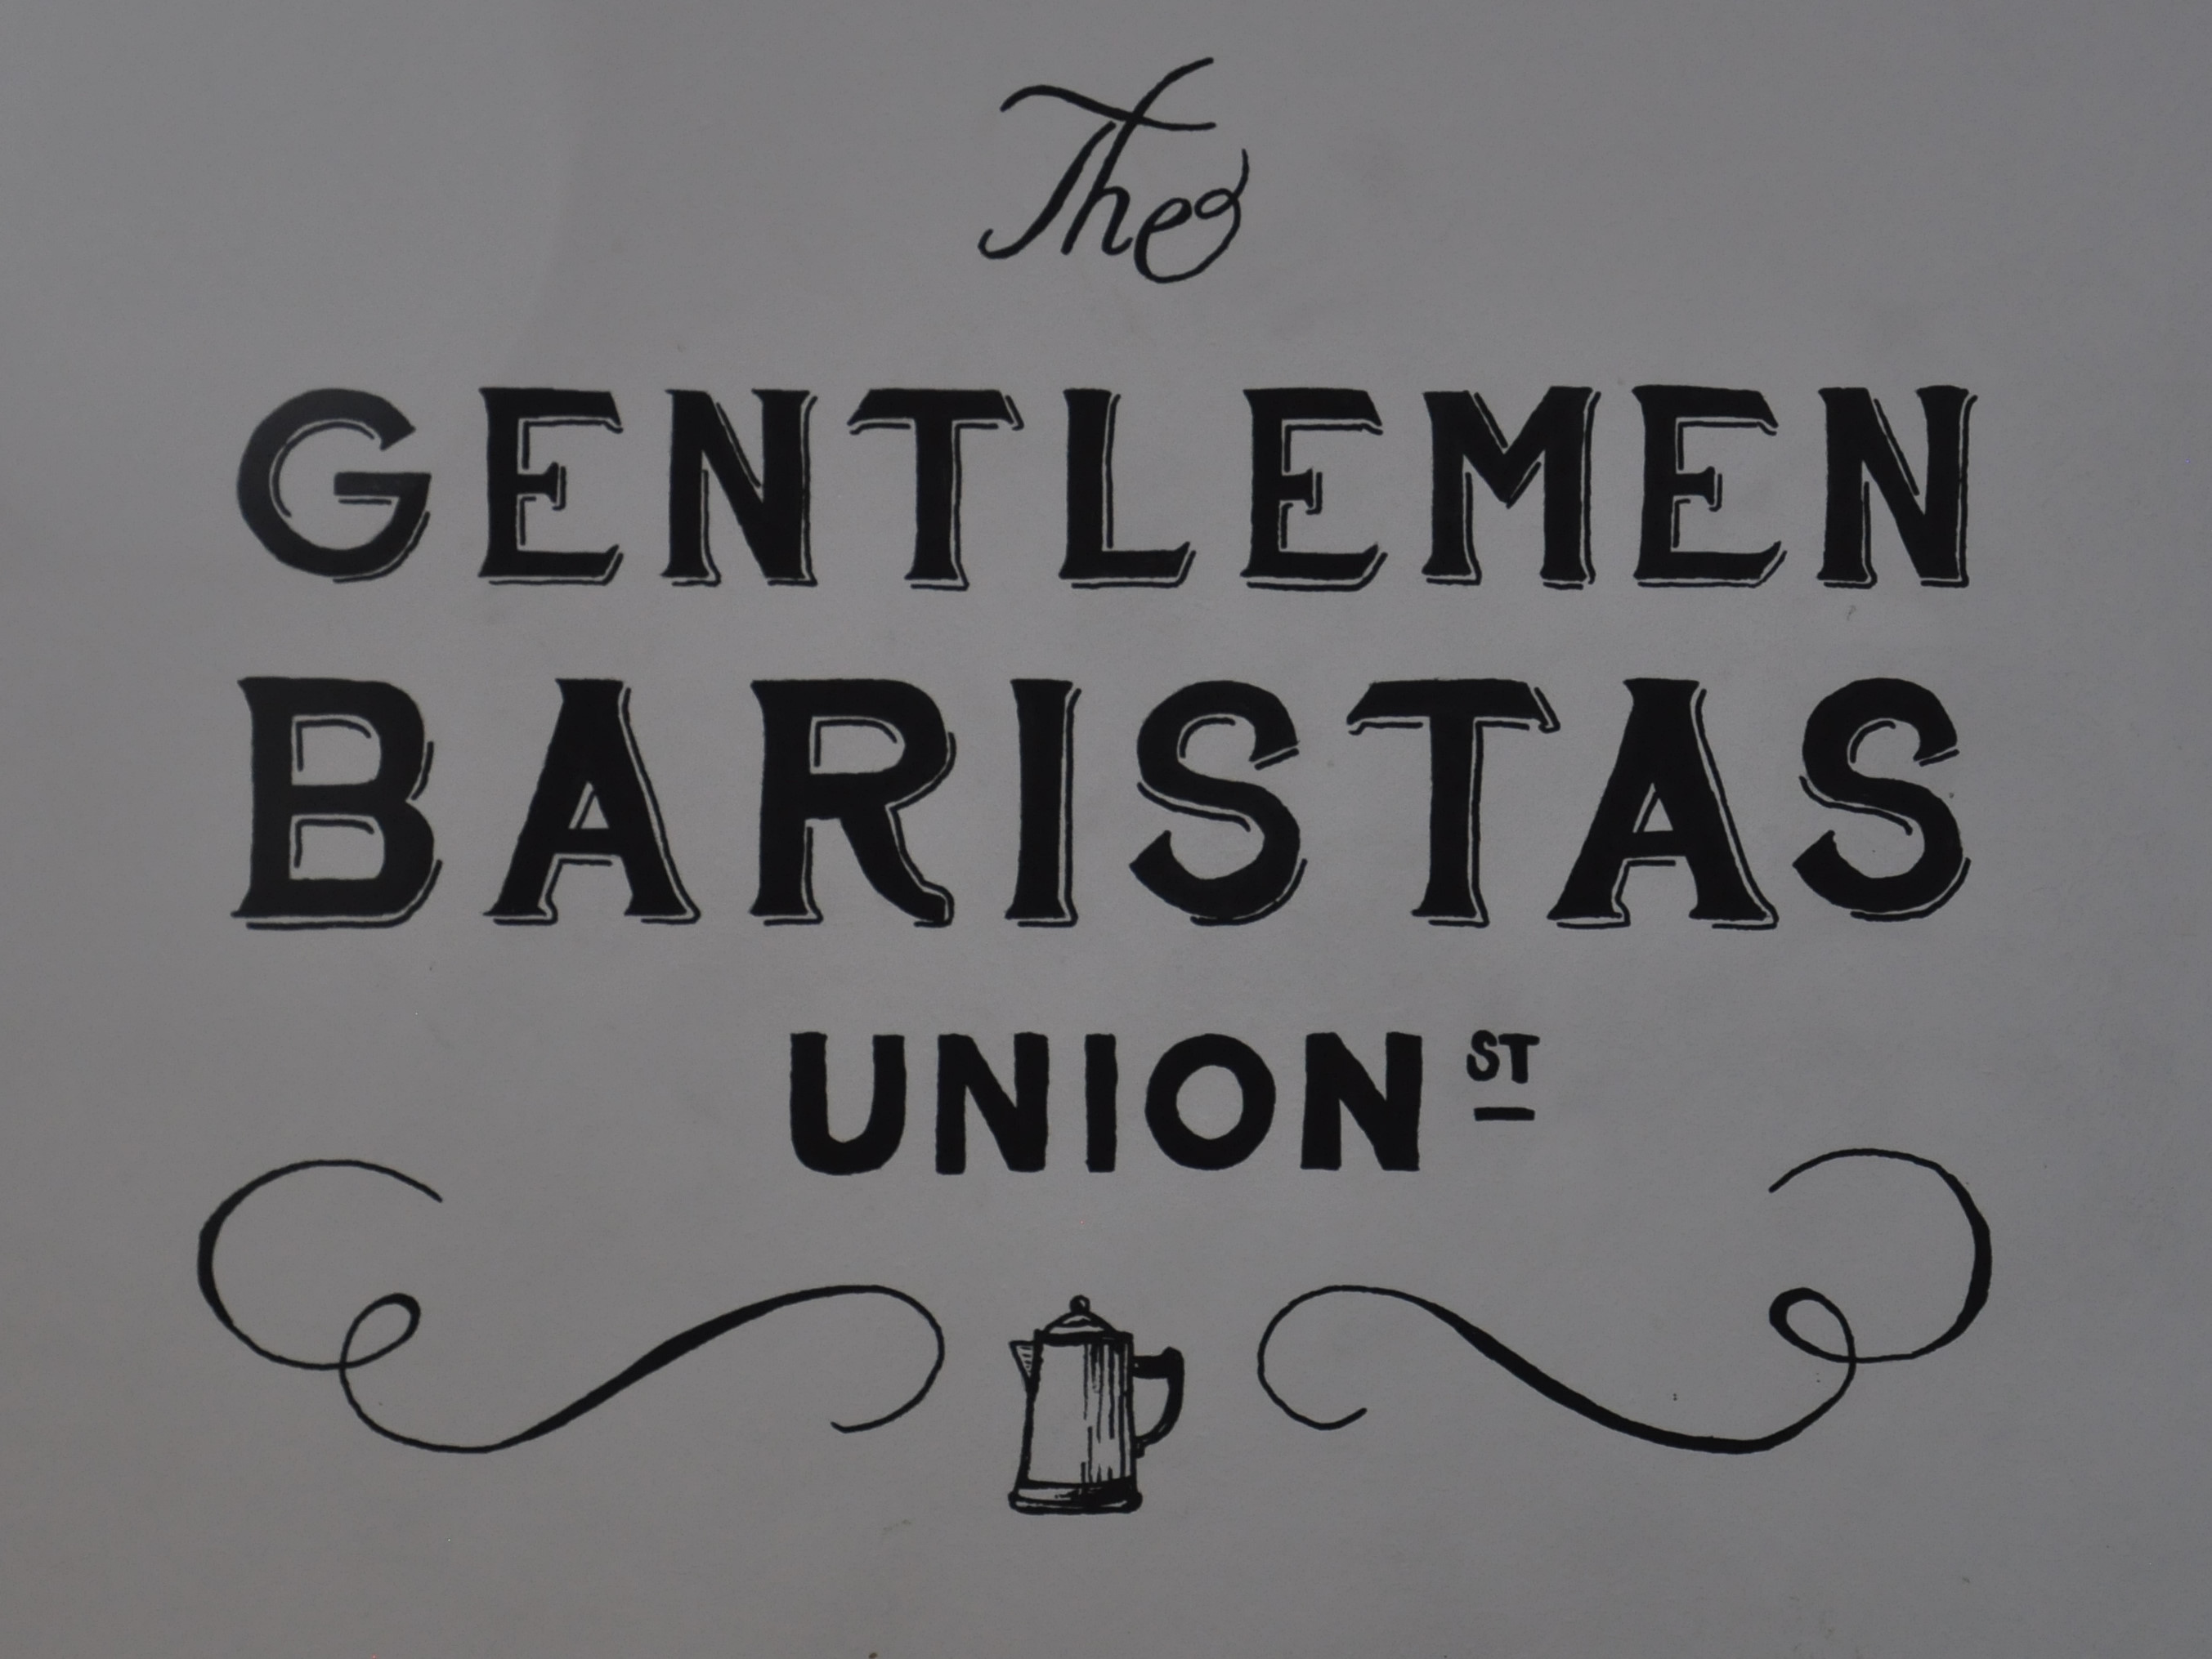 Detail taken from The Gentlemen Baristas logo drawn on the wall upstairs at Union Street.